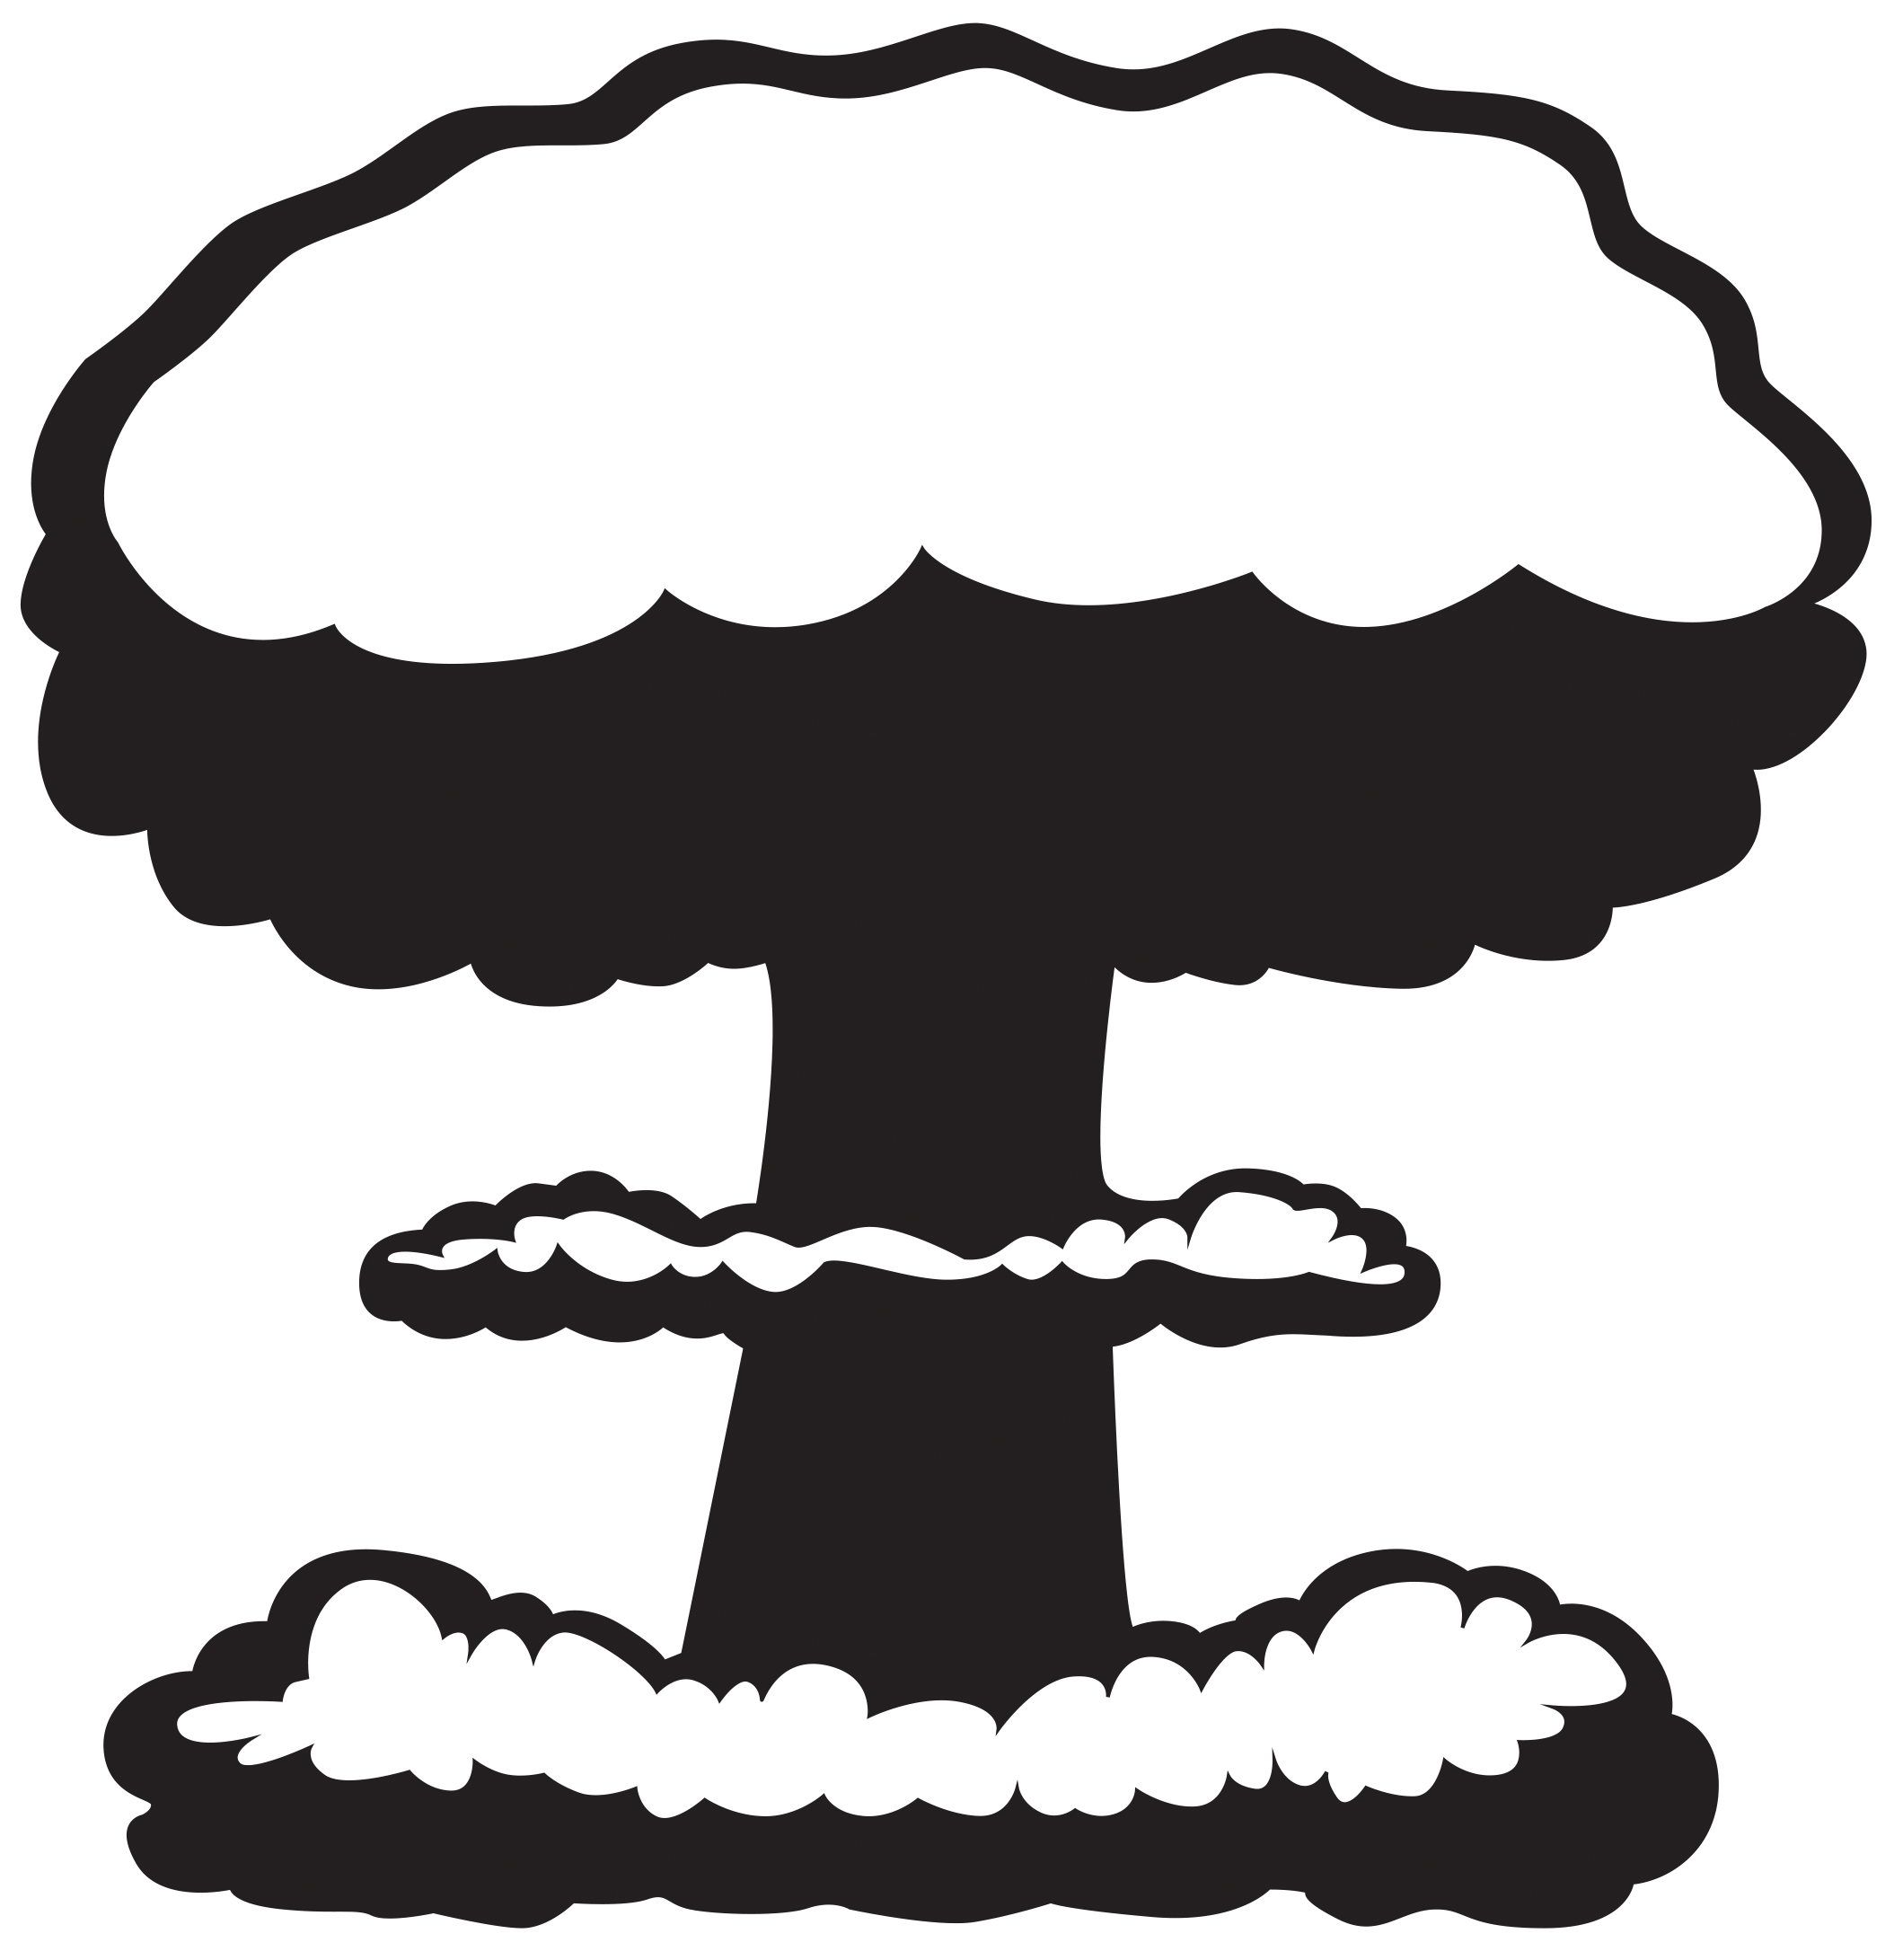 uploads nuclear explosion nuclear explosion PNG24 4